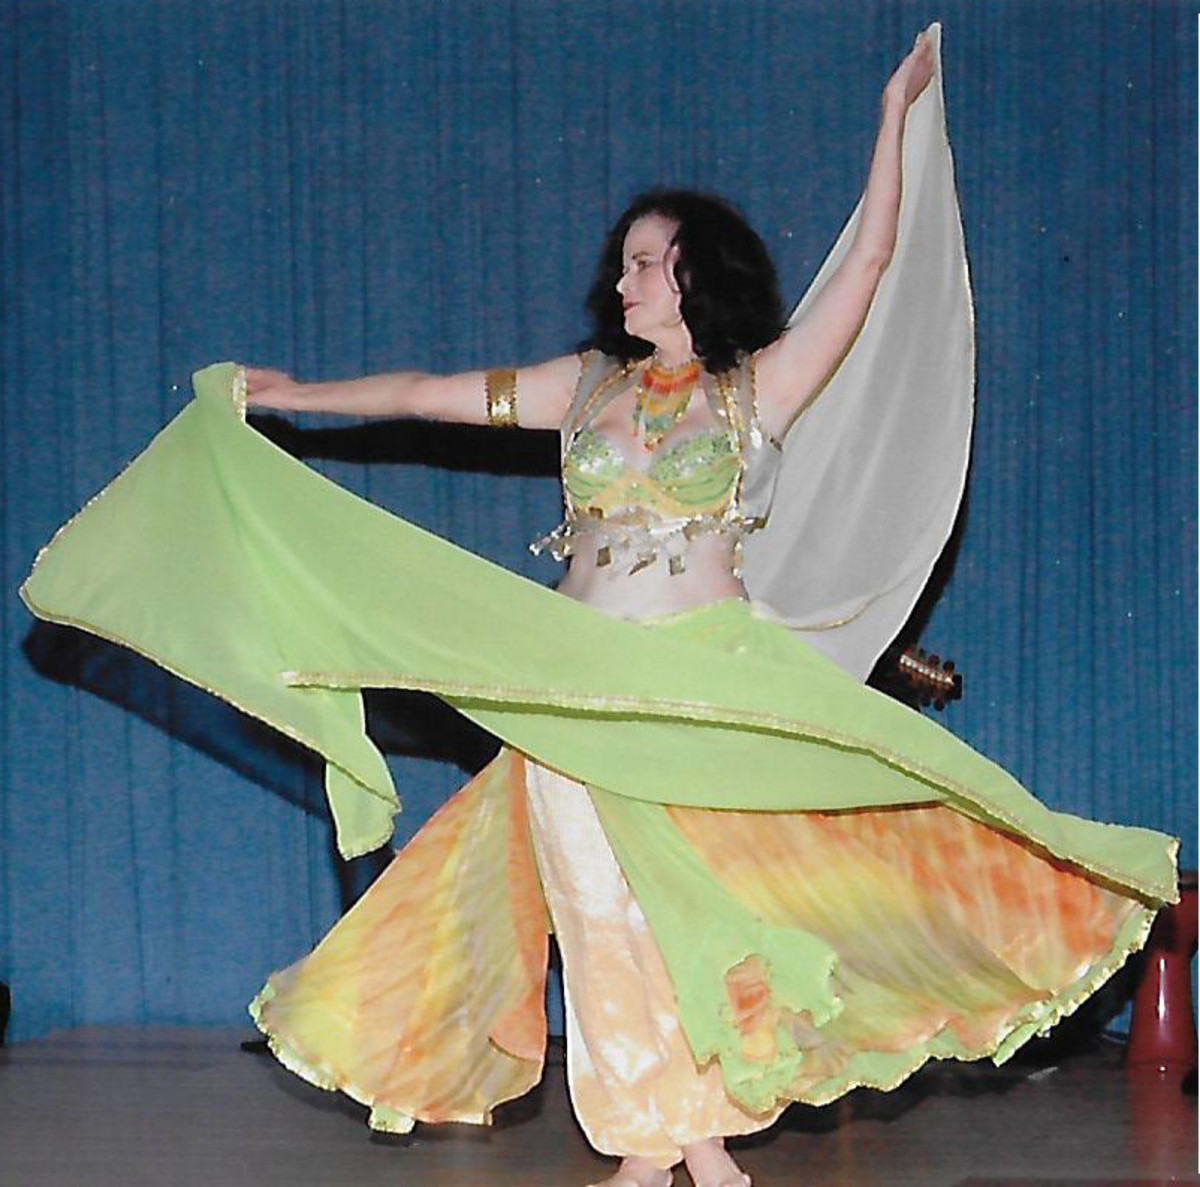 Belly dancing exercises the entire body as movements effect both the interior and the exterior portions of the body.